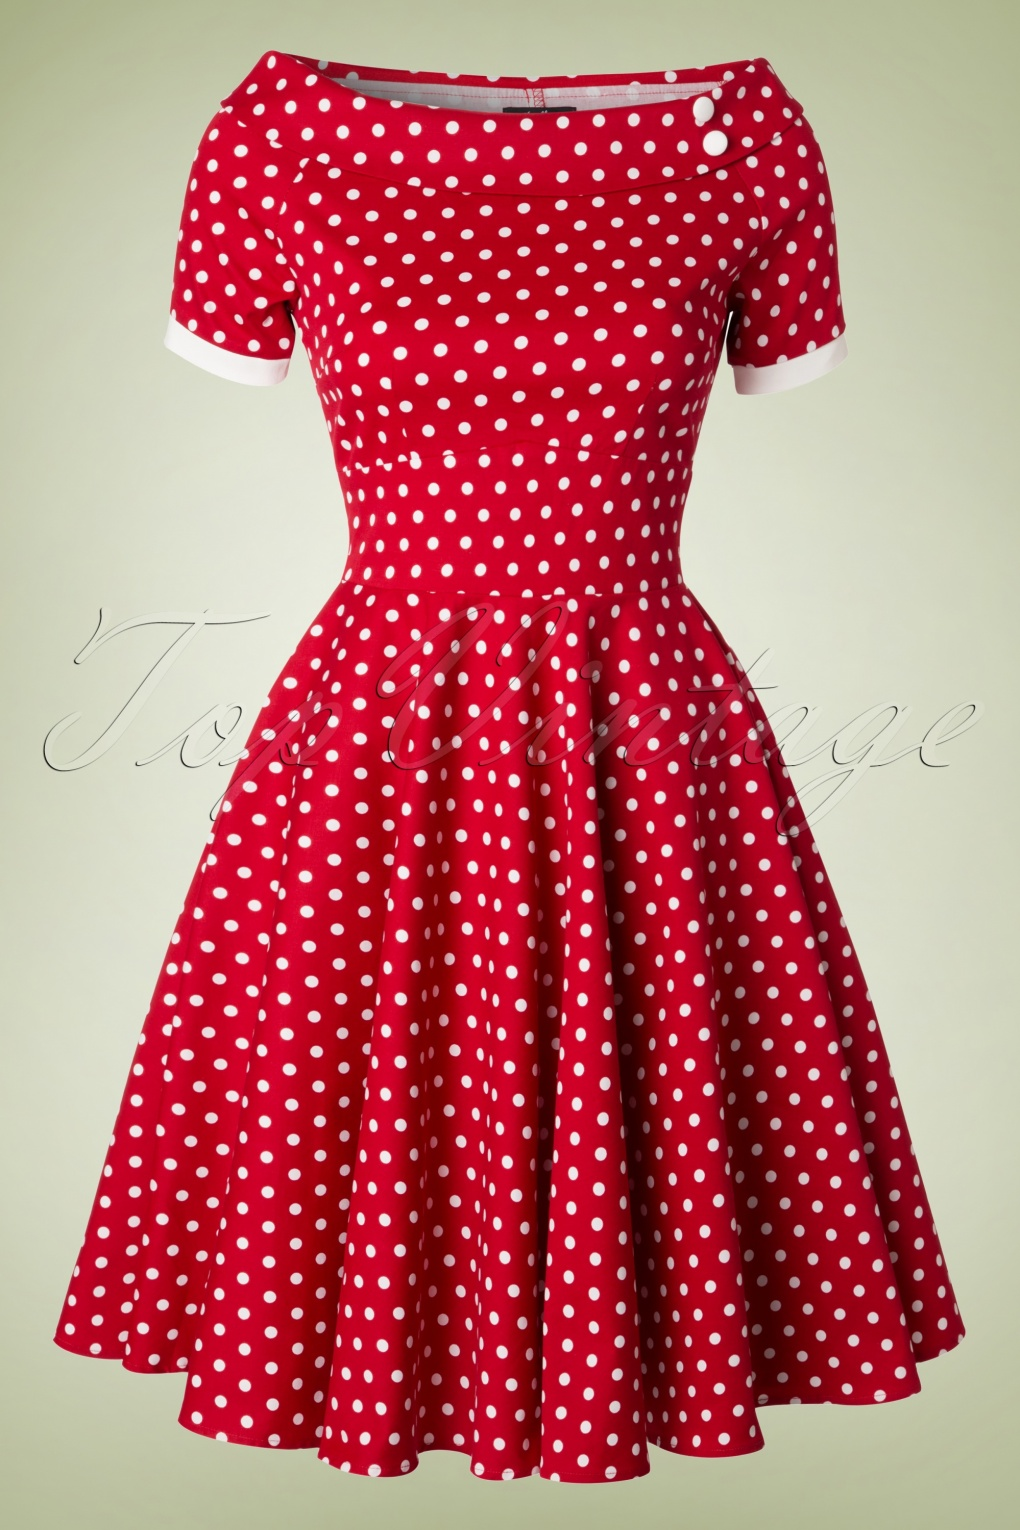 Vintage Inspired Clothing Stores 50s Darlene Polkadot Swing Dress in Red £43.68 AT vintagedancer.com